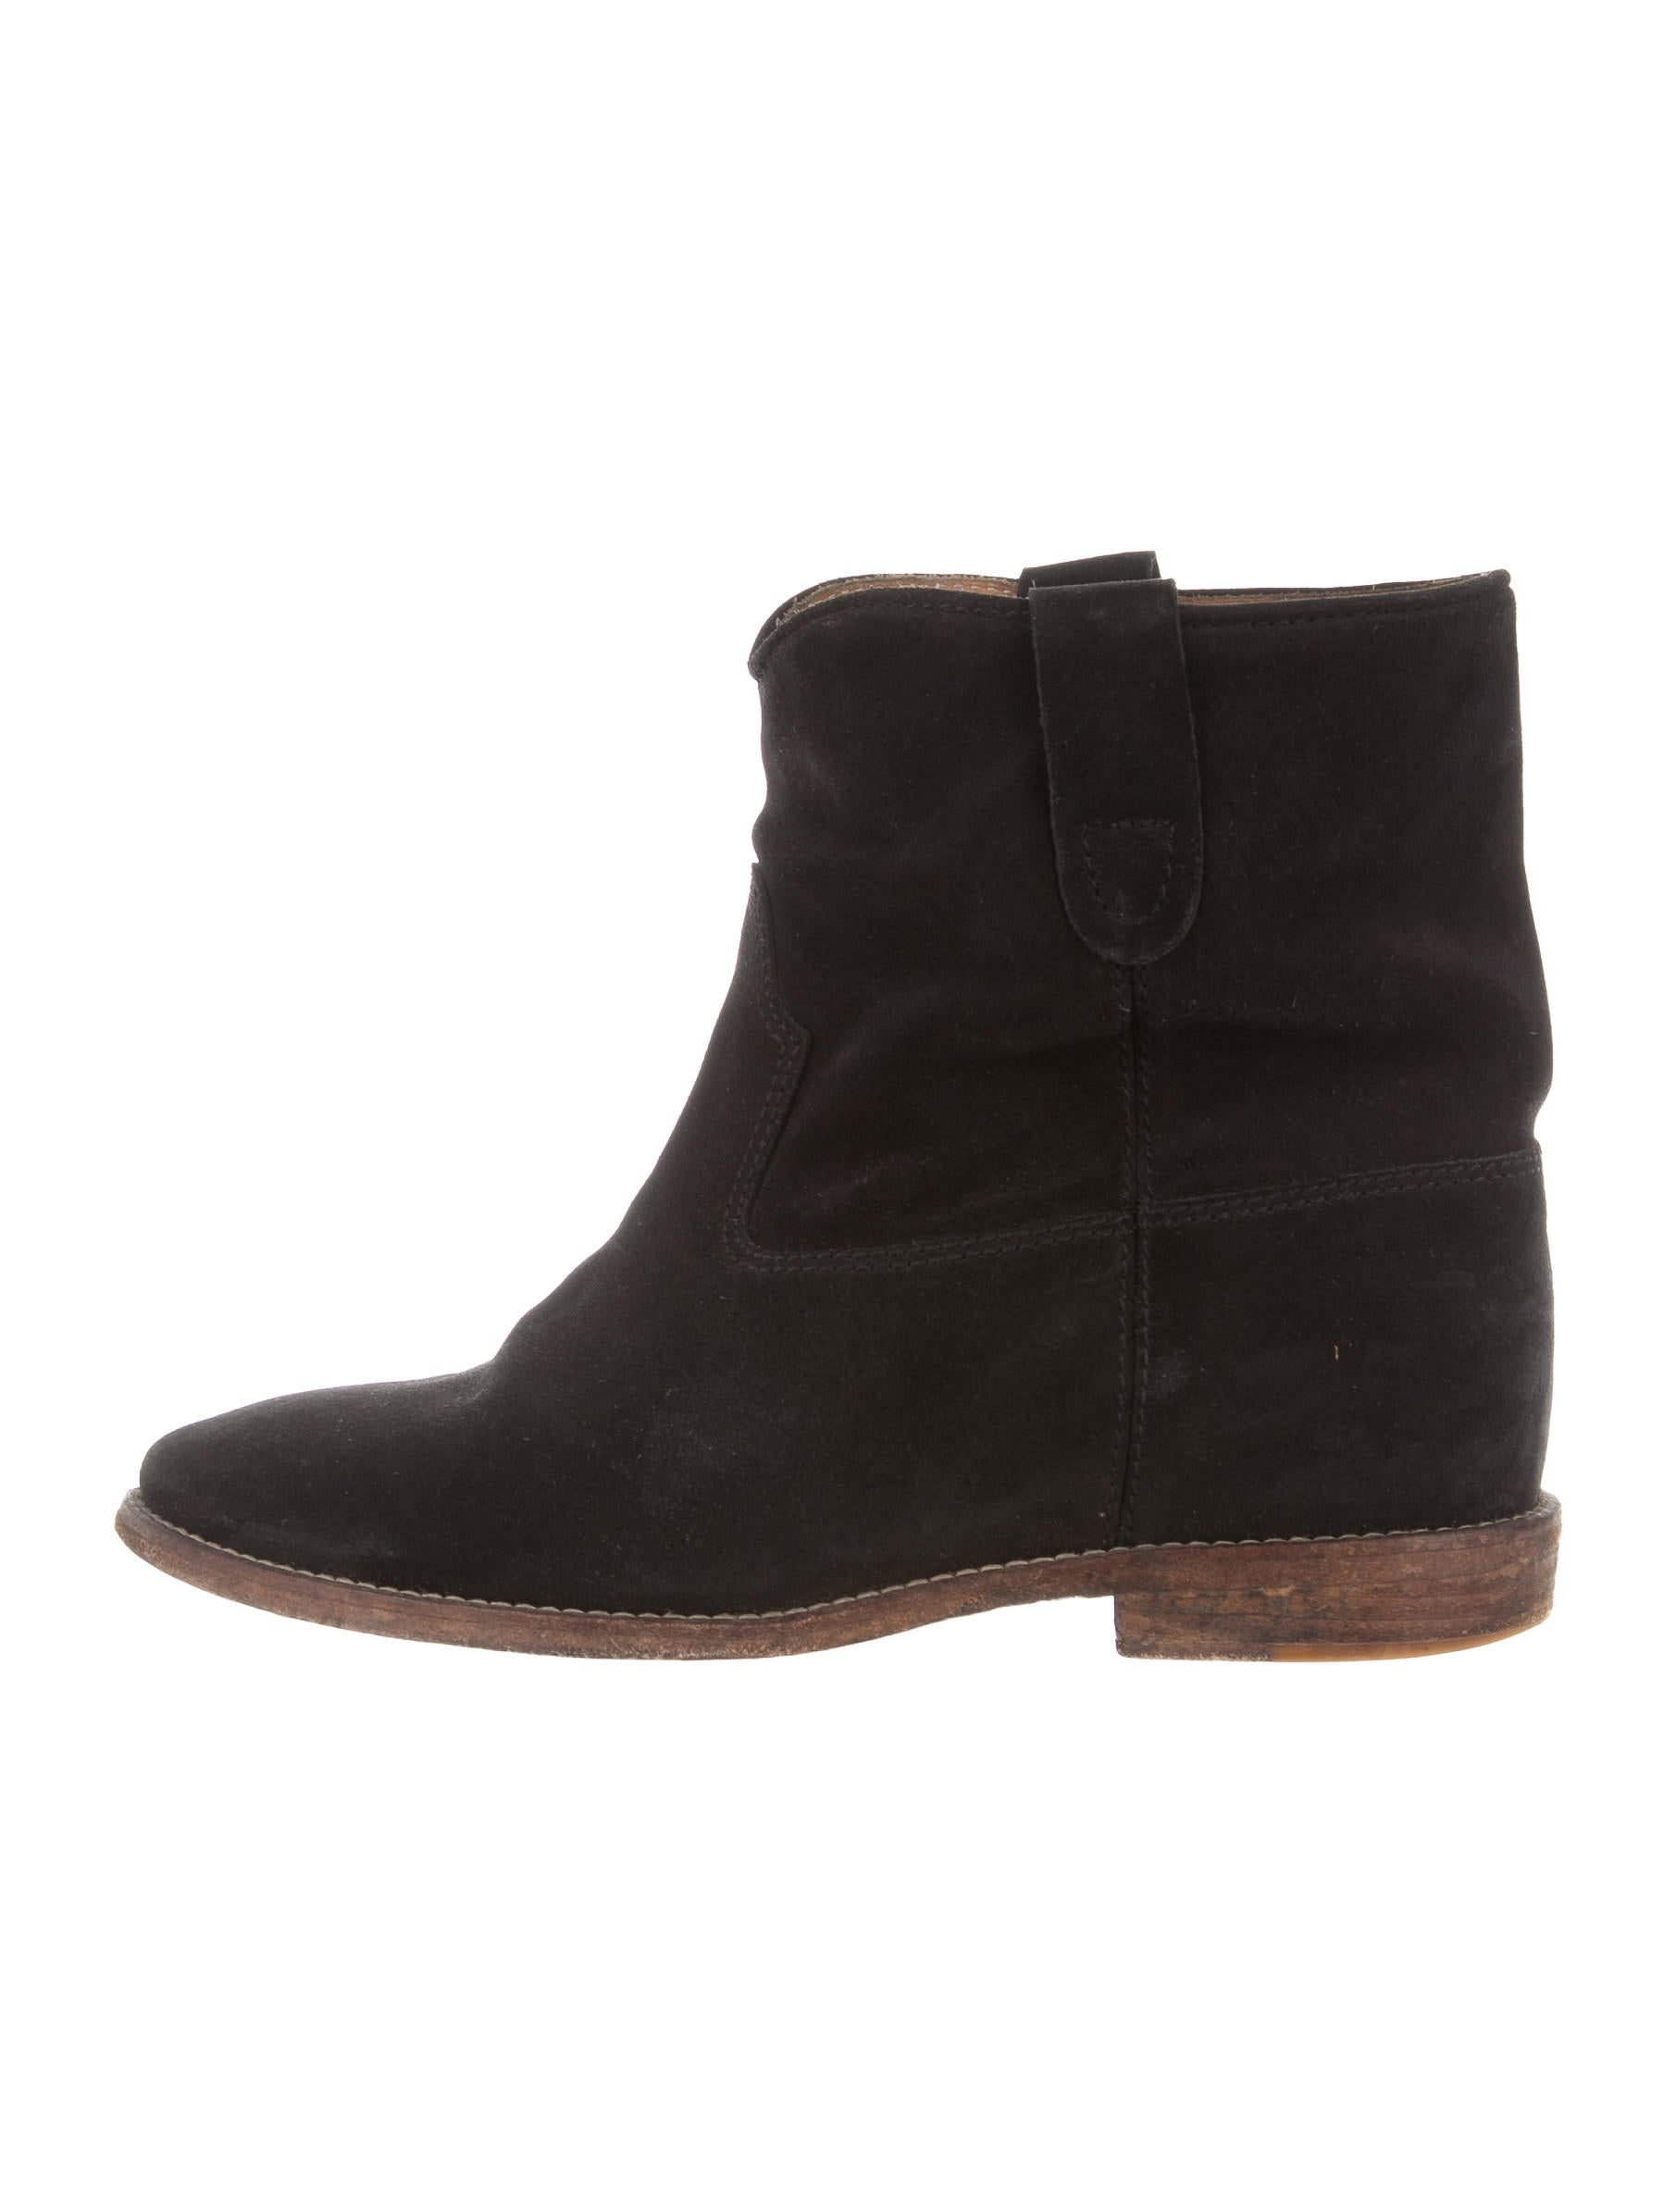 isabel marant suede ankle boots shoes isa40755 the realreal. Black Bedroom Furniture Sets. Home Design Ideas